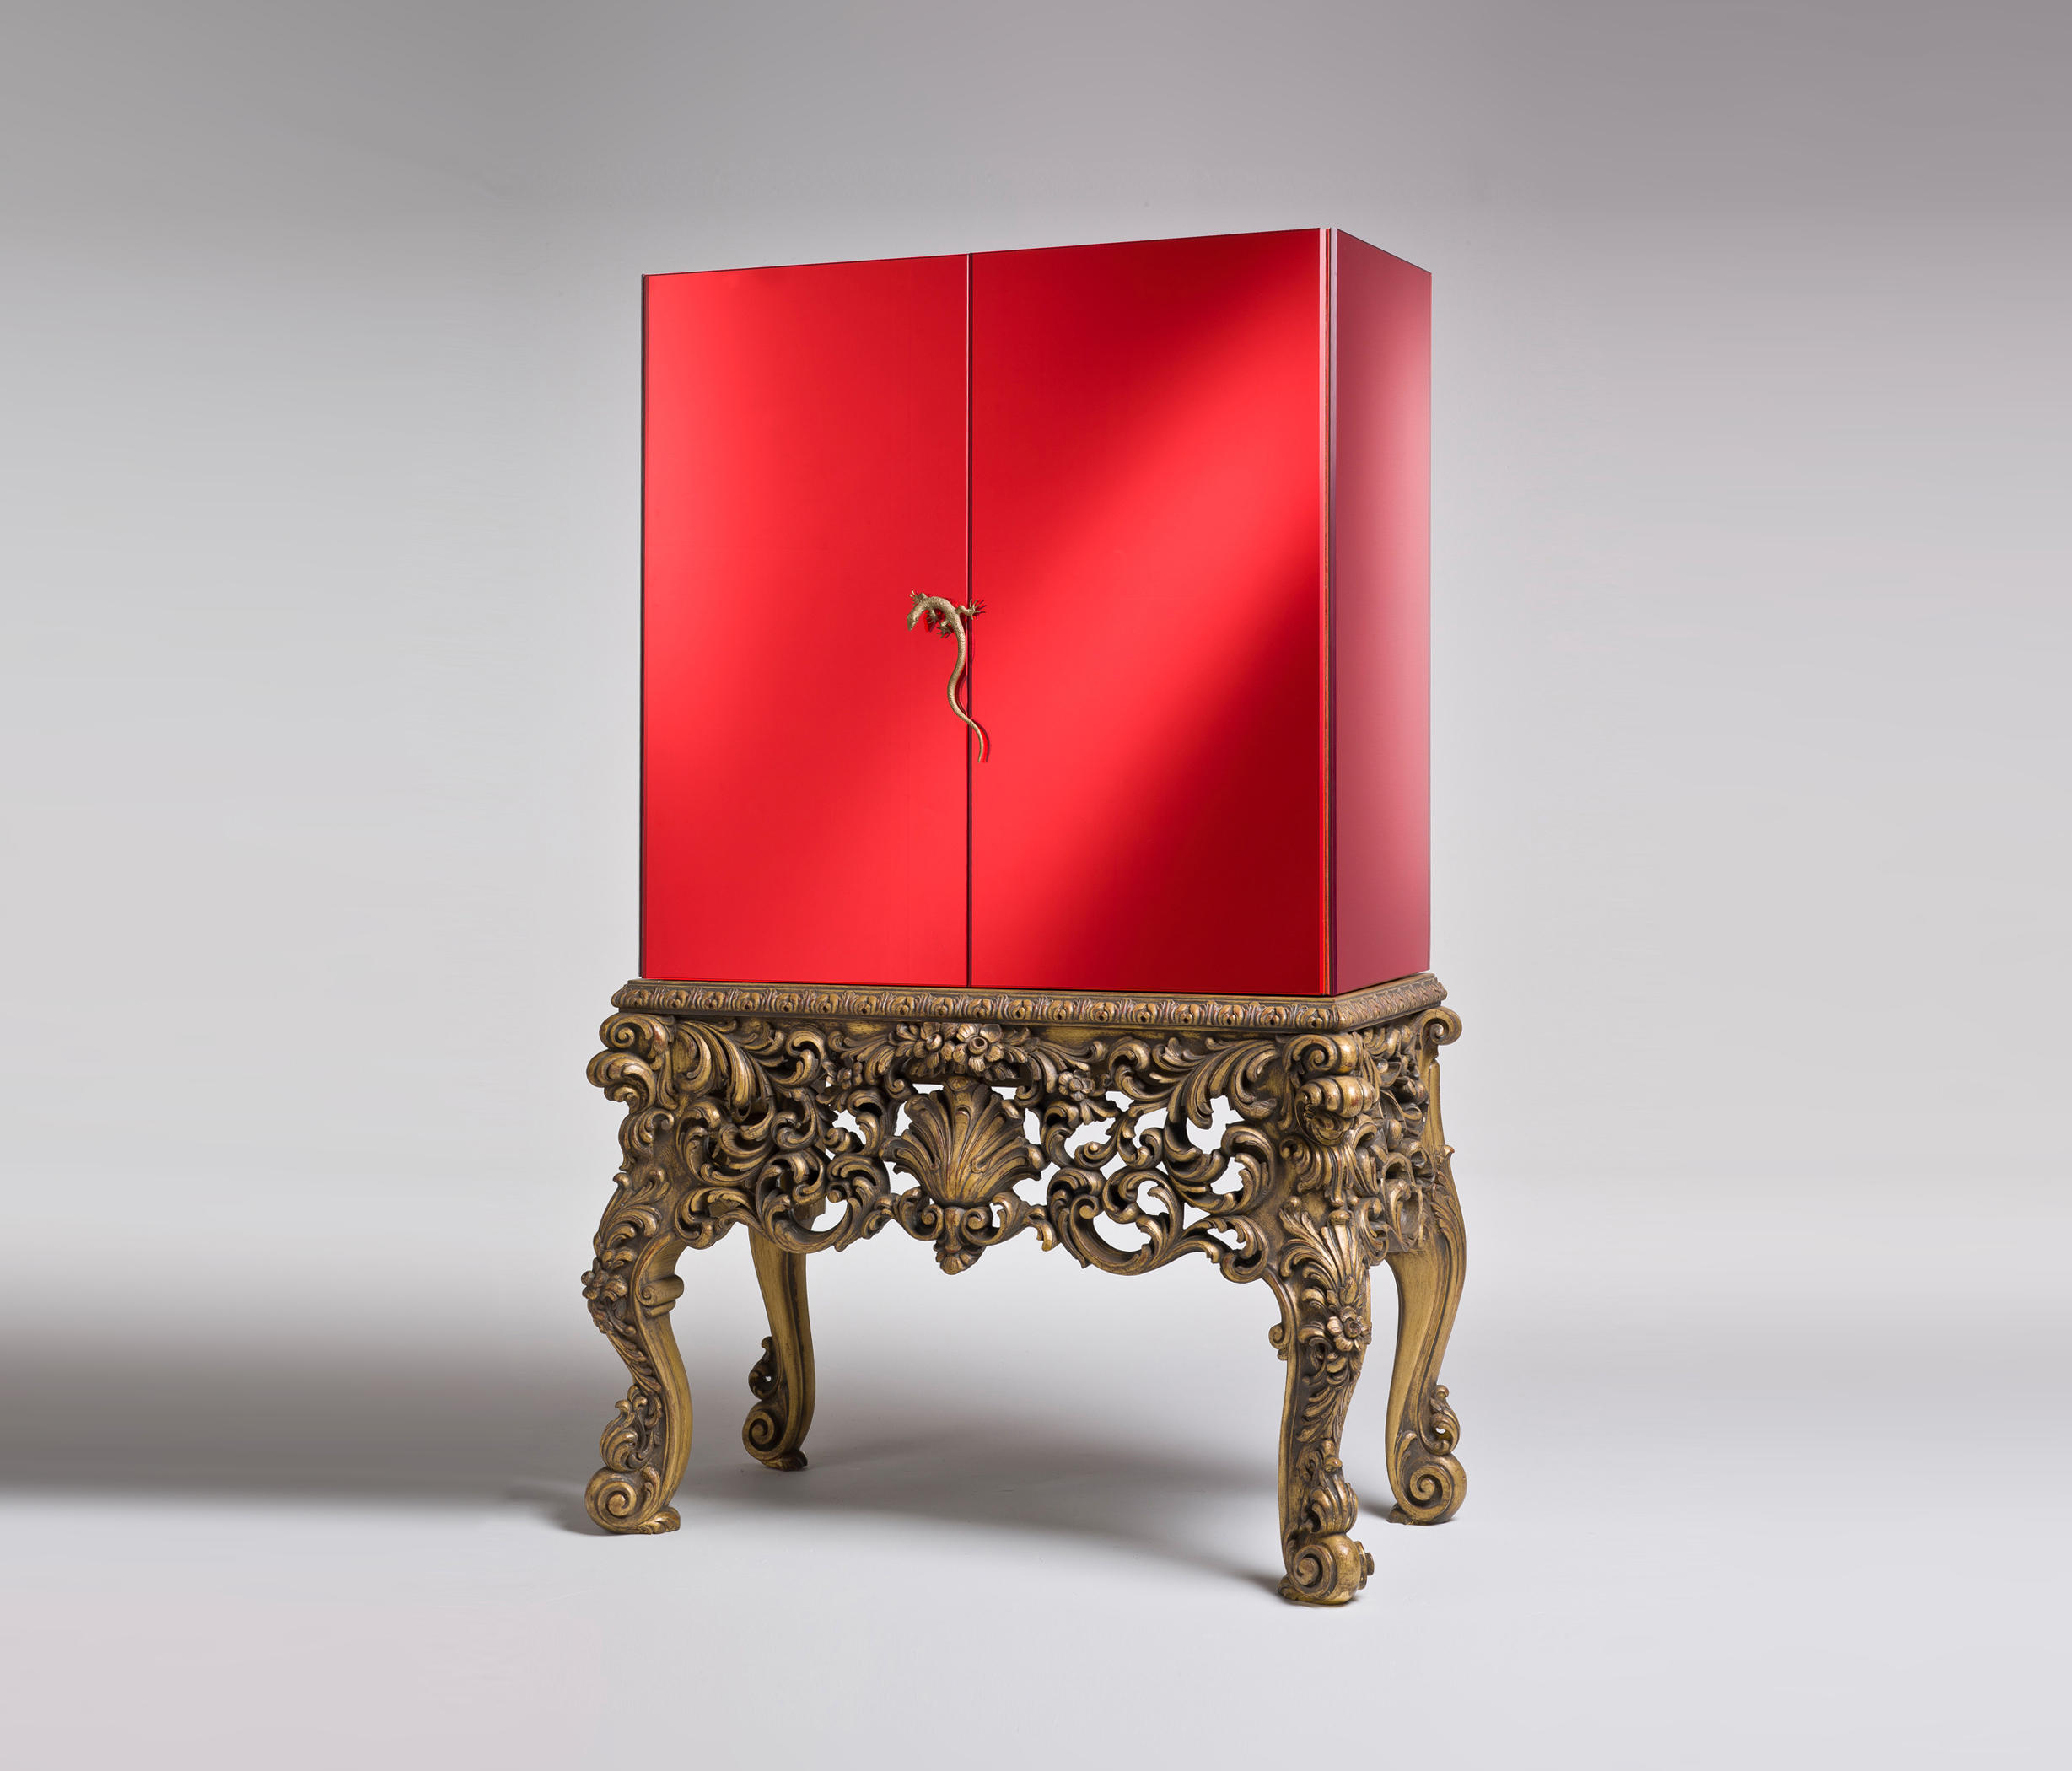 luxury cabinets The Most Detailed Luxury Cabinets 4 The Most Detailed Luxury Cabinets 1